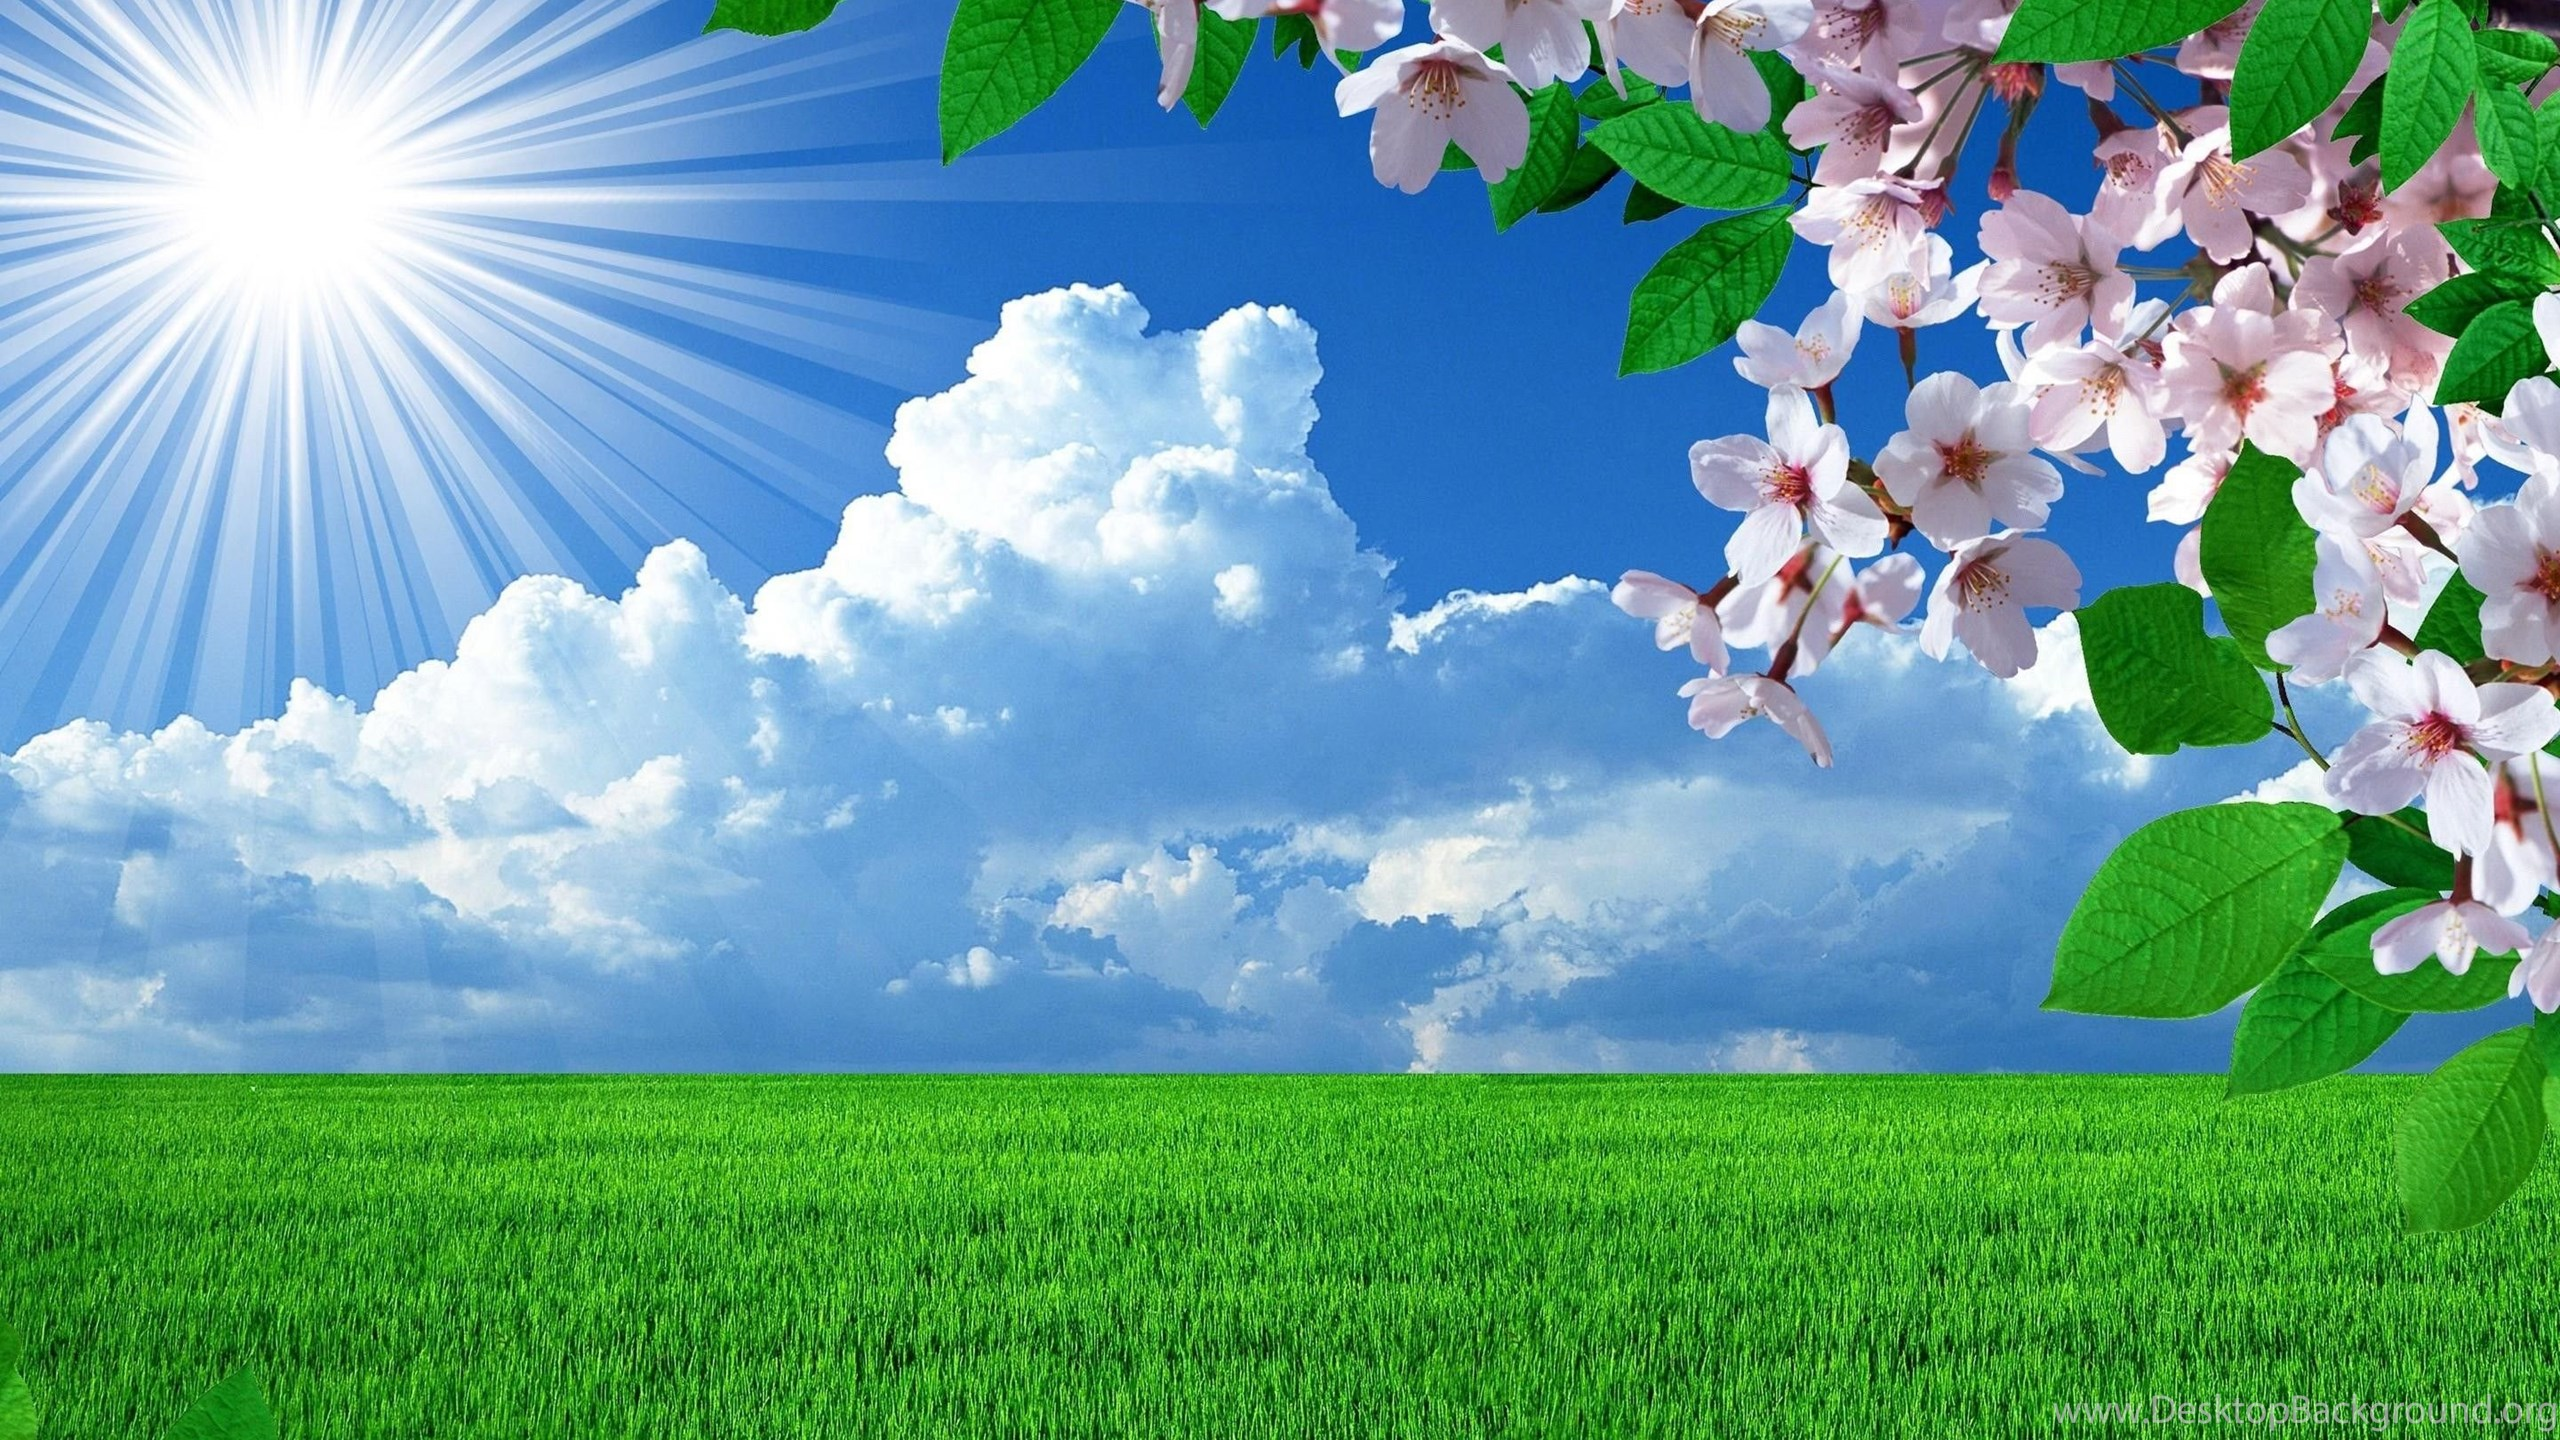 Spring Nature Flowers Landscapes Hq Wallpapers New Hd Wallpapers